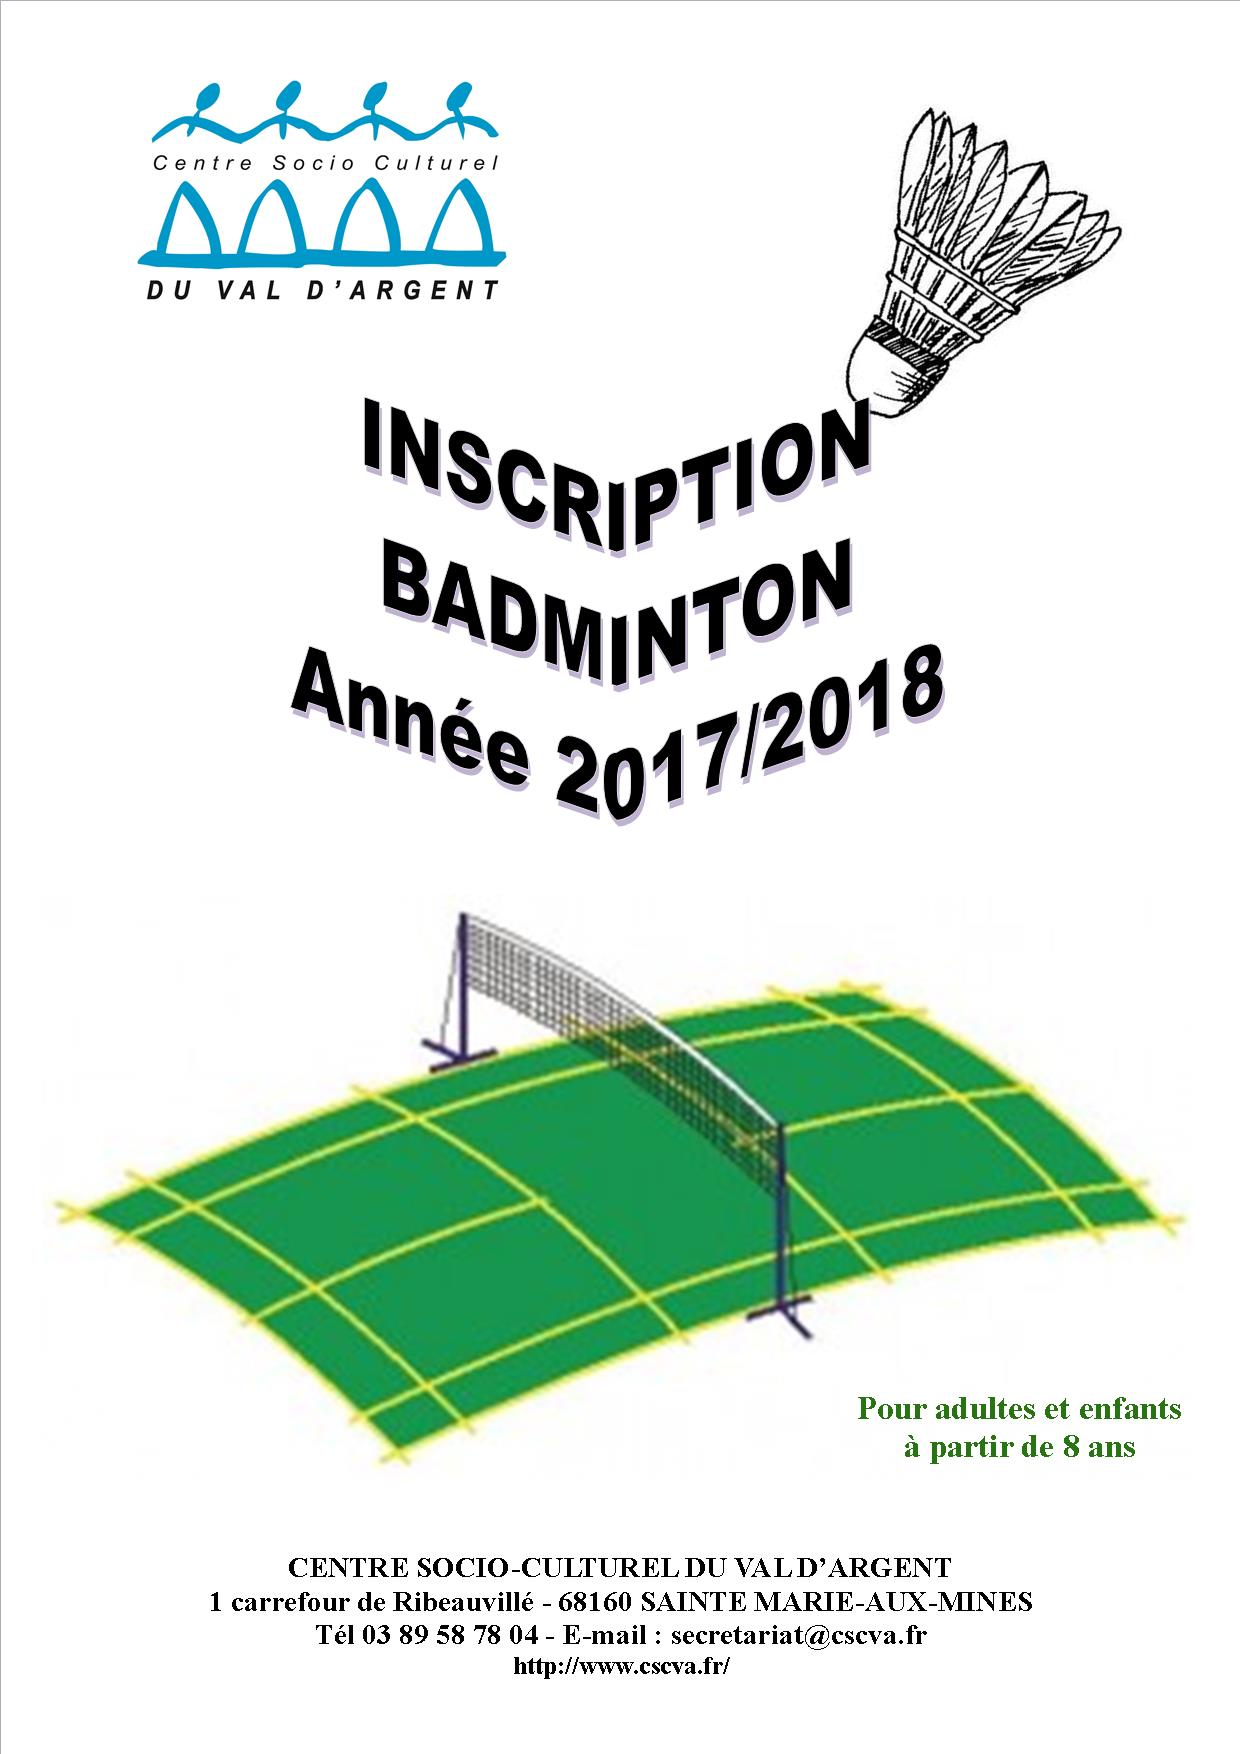 INSCRIPTION BAD 2017 2018